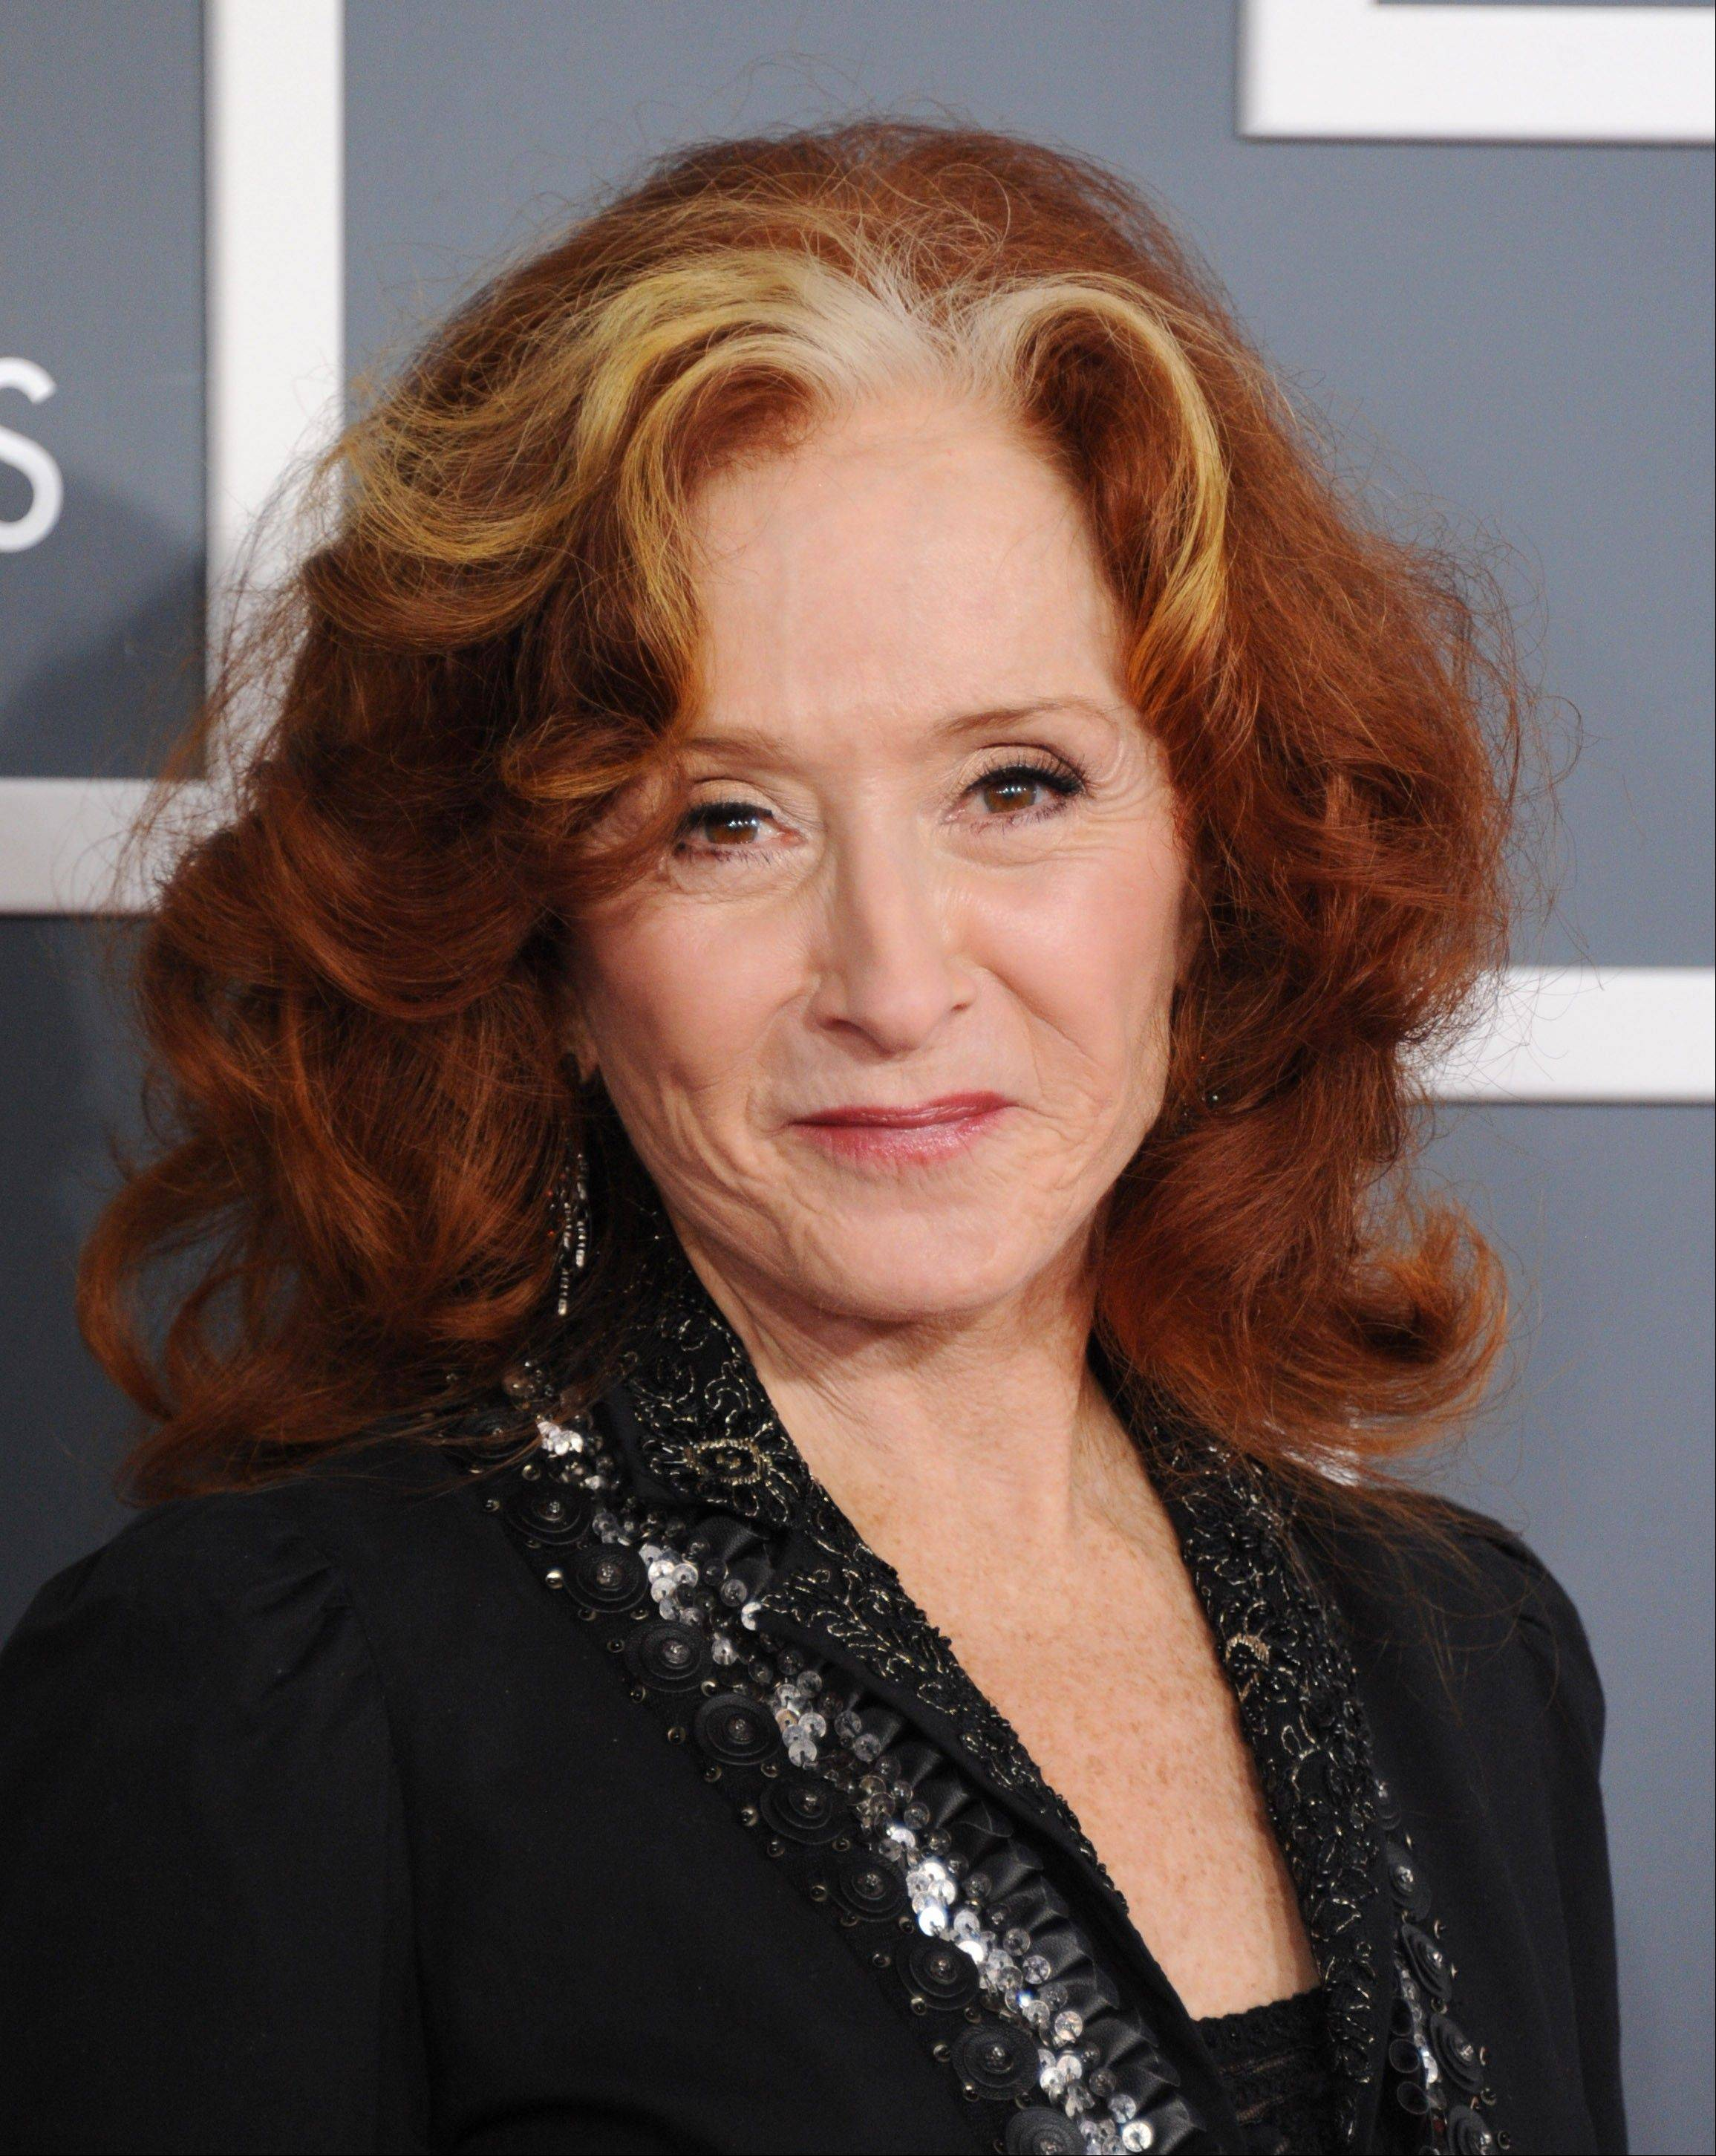 Bonnie Raitt arrives at the 55th annual Grammy Awards on Sunday, Feb. 10, 2013, in Los Angeles.